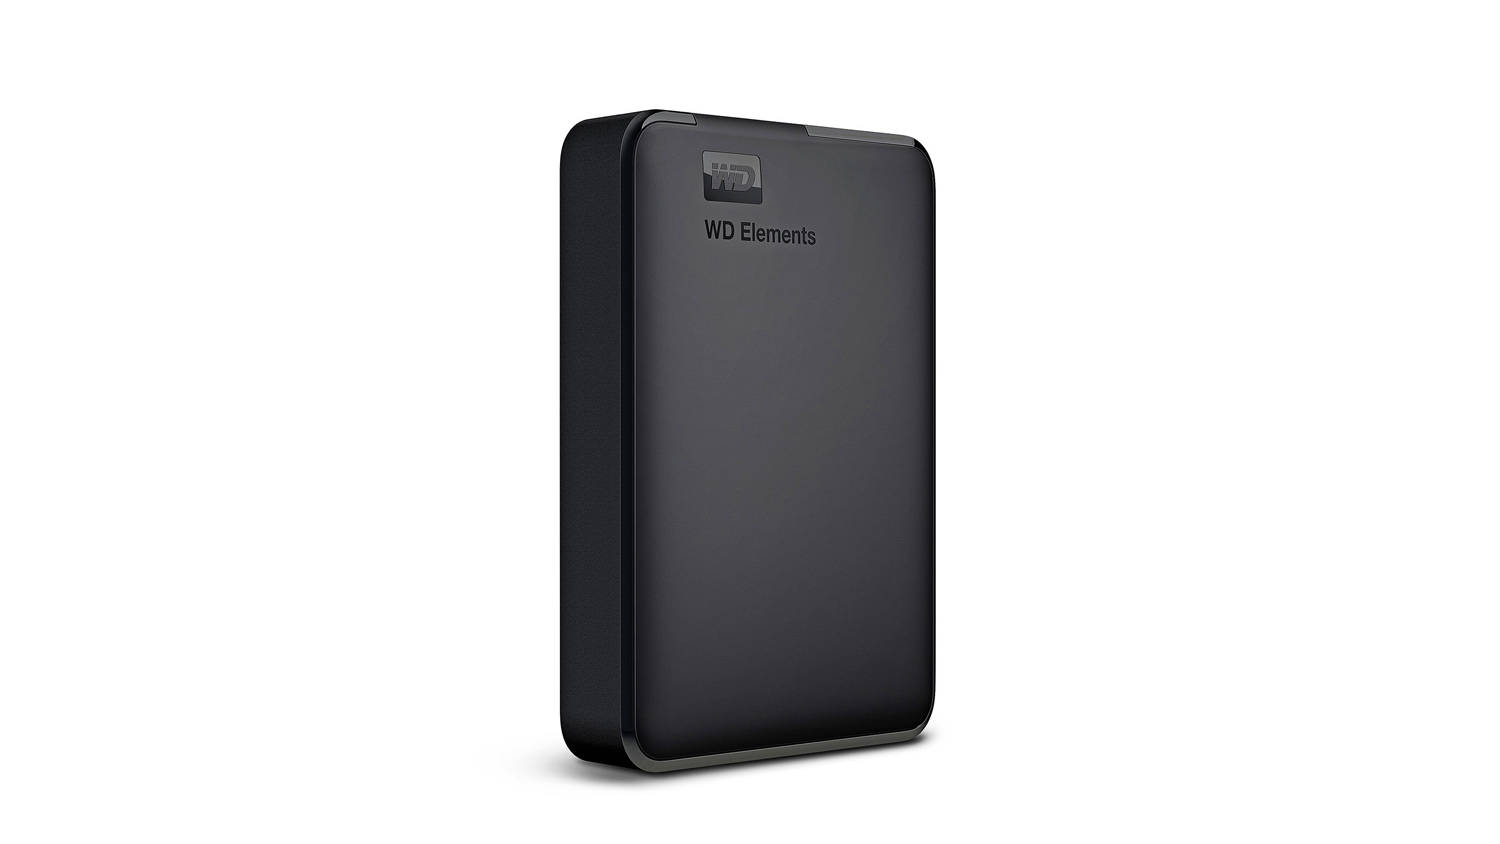 WD Elements USB 3.0 Portable Hard Drive - Left angle